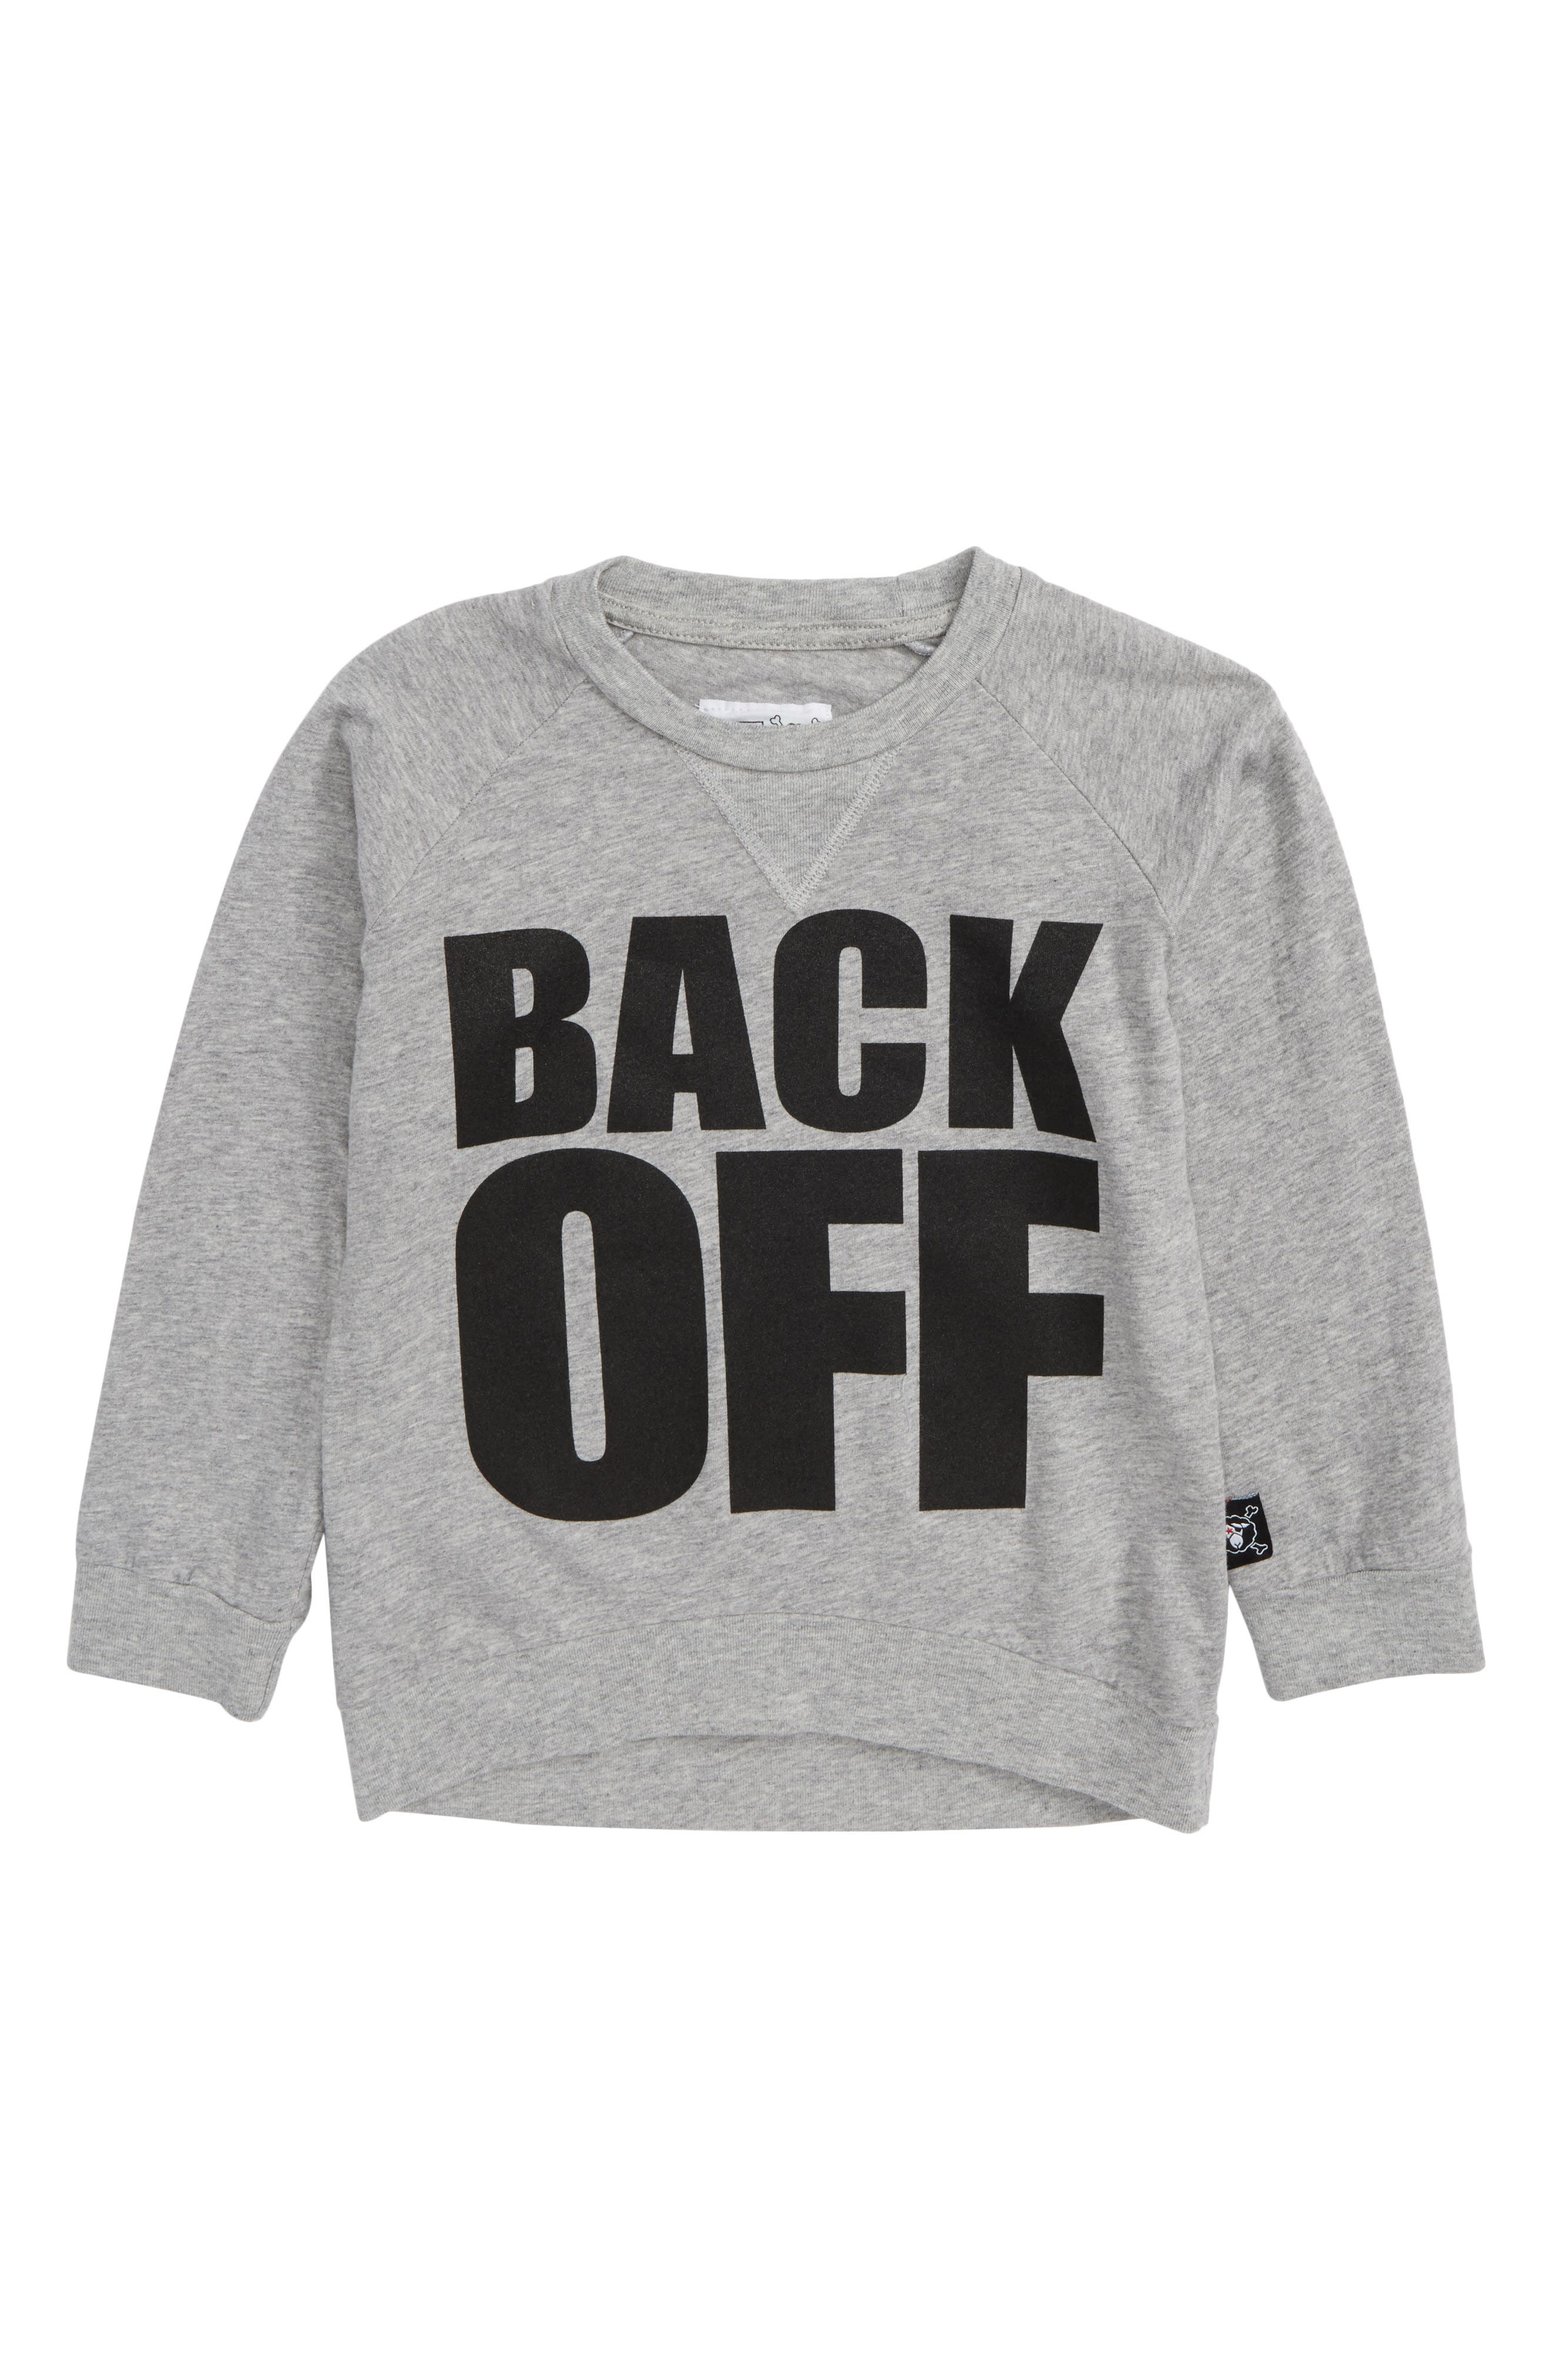 Back Off Graphic T-Shirt,                             Main thumbnail 1, color,                             Heather Grey